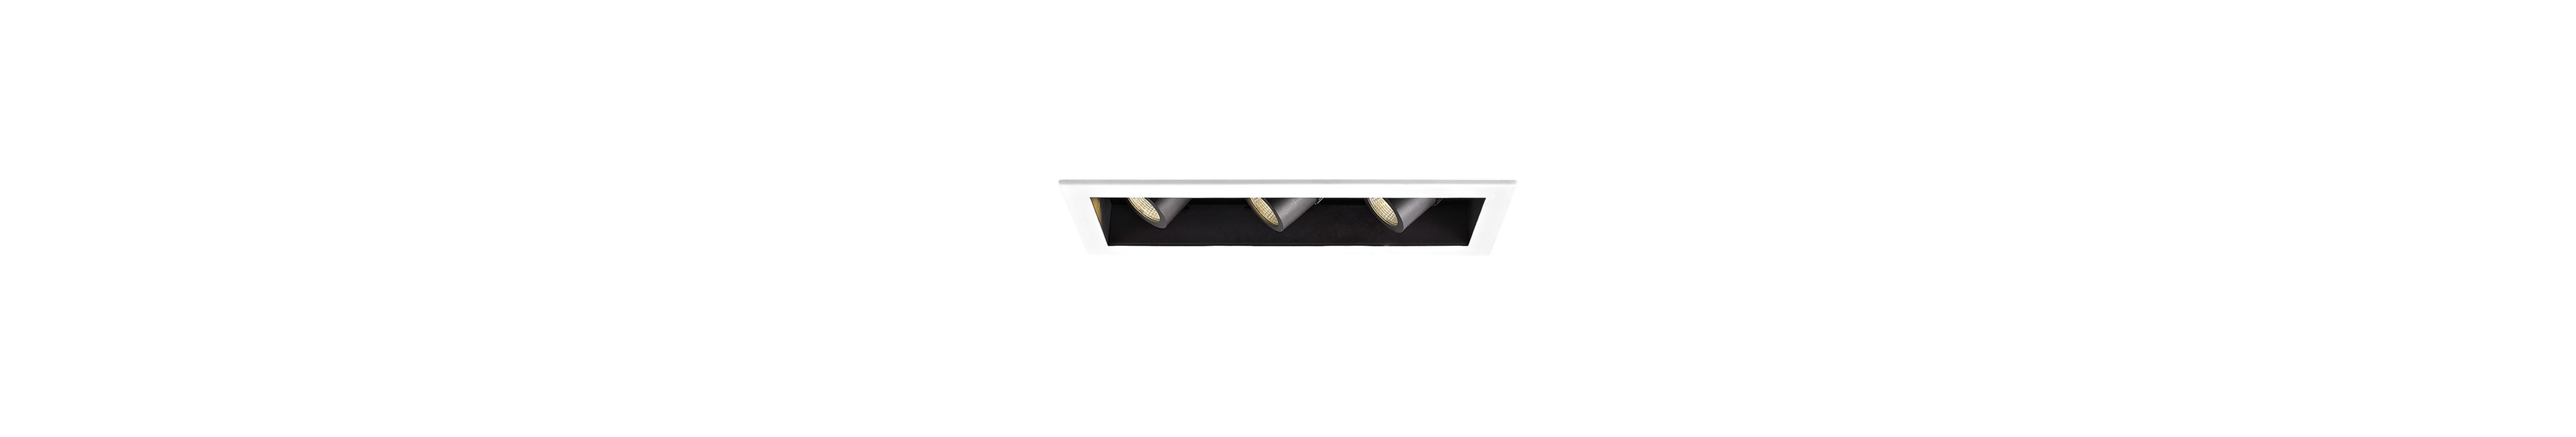 "WAC Lighting MT-4LD316N-S35 4"" Trim 3500K High Output LED Recessed"